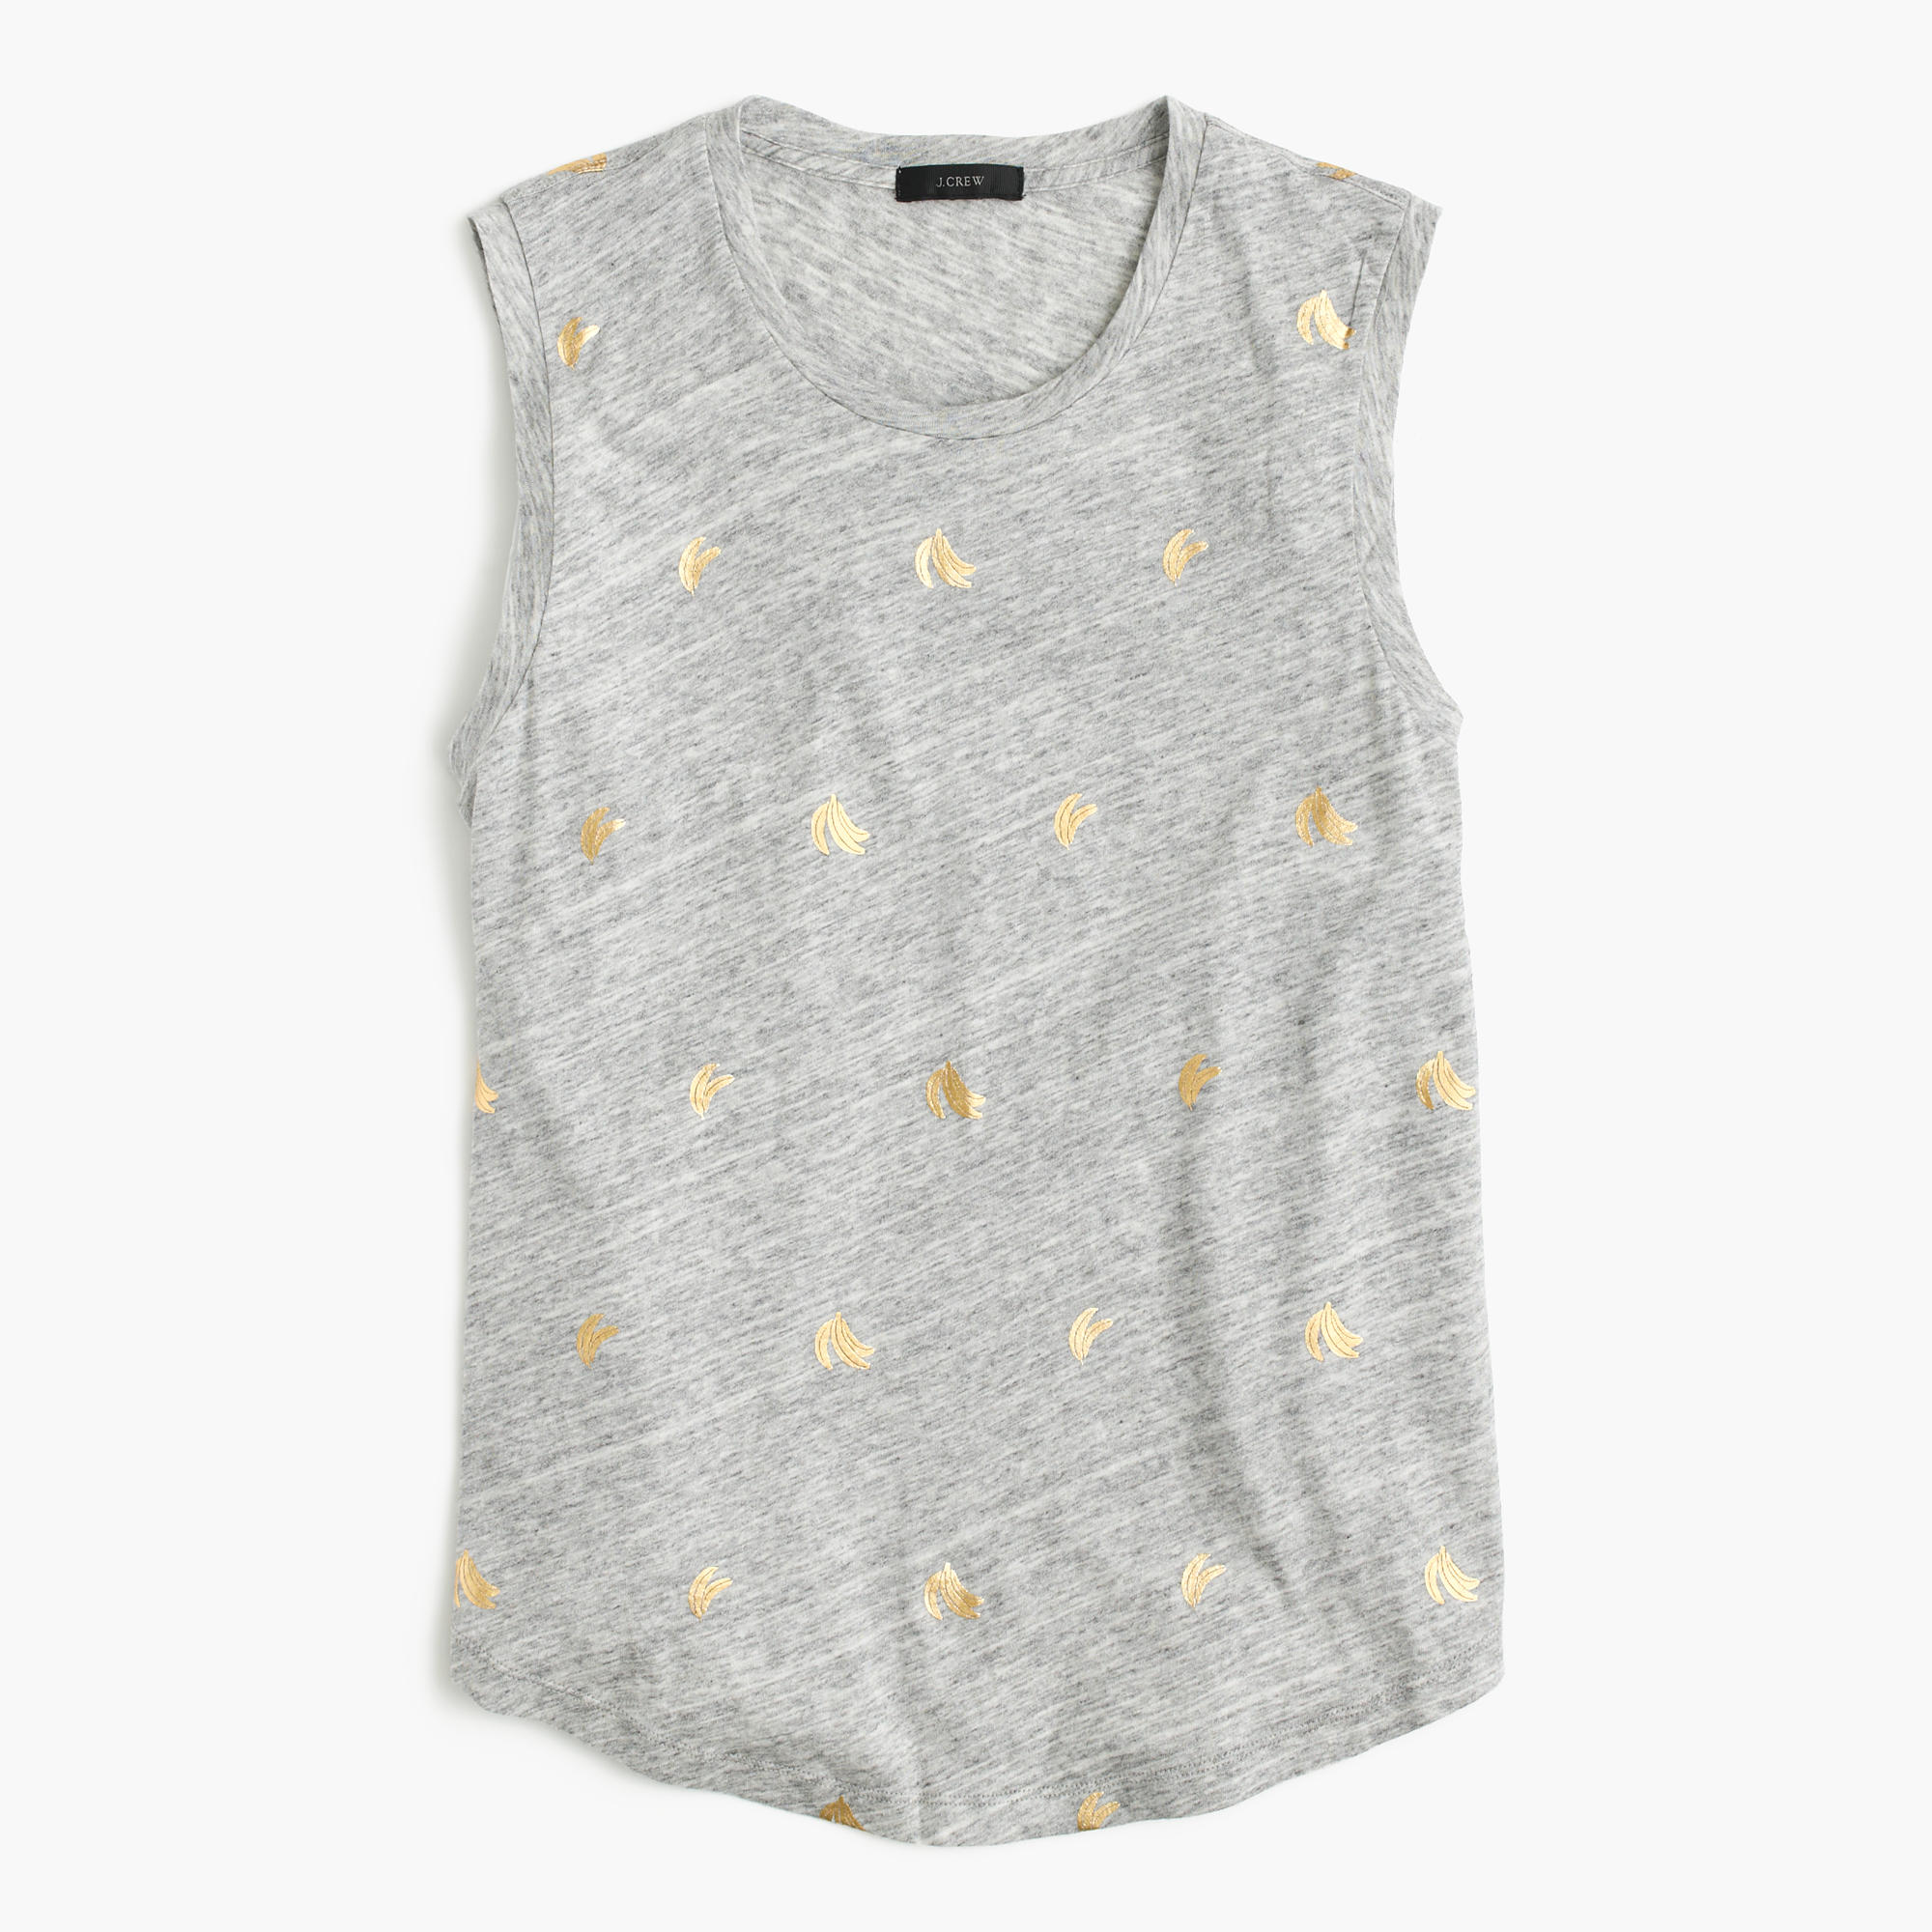 Metallic banana print t shirt j crew for Print one t shirt